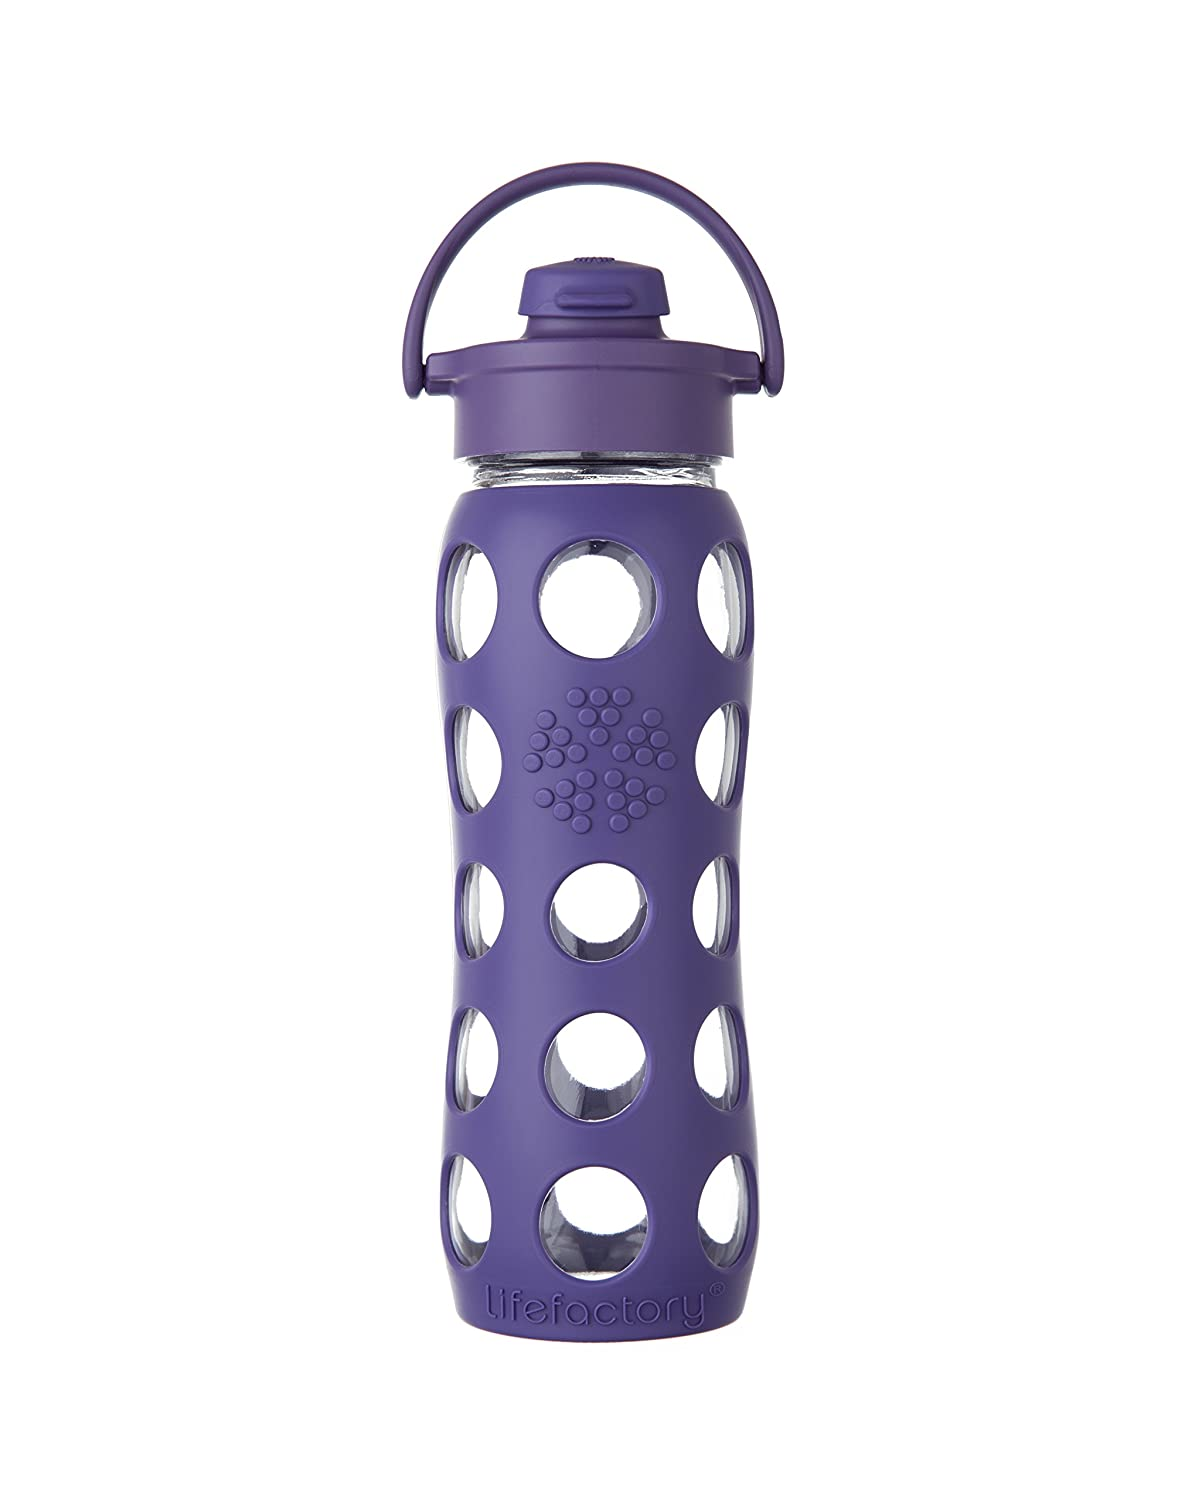 Lifefactory BPA-Free Glass Water Bottle with Flip Cap & Silicone Sleeve, 22 oz, Royal Purple